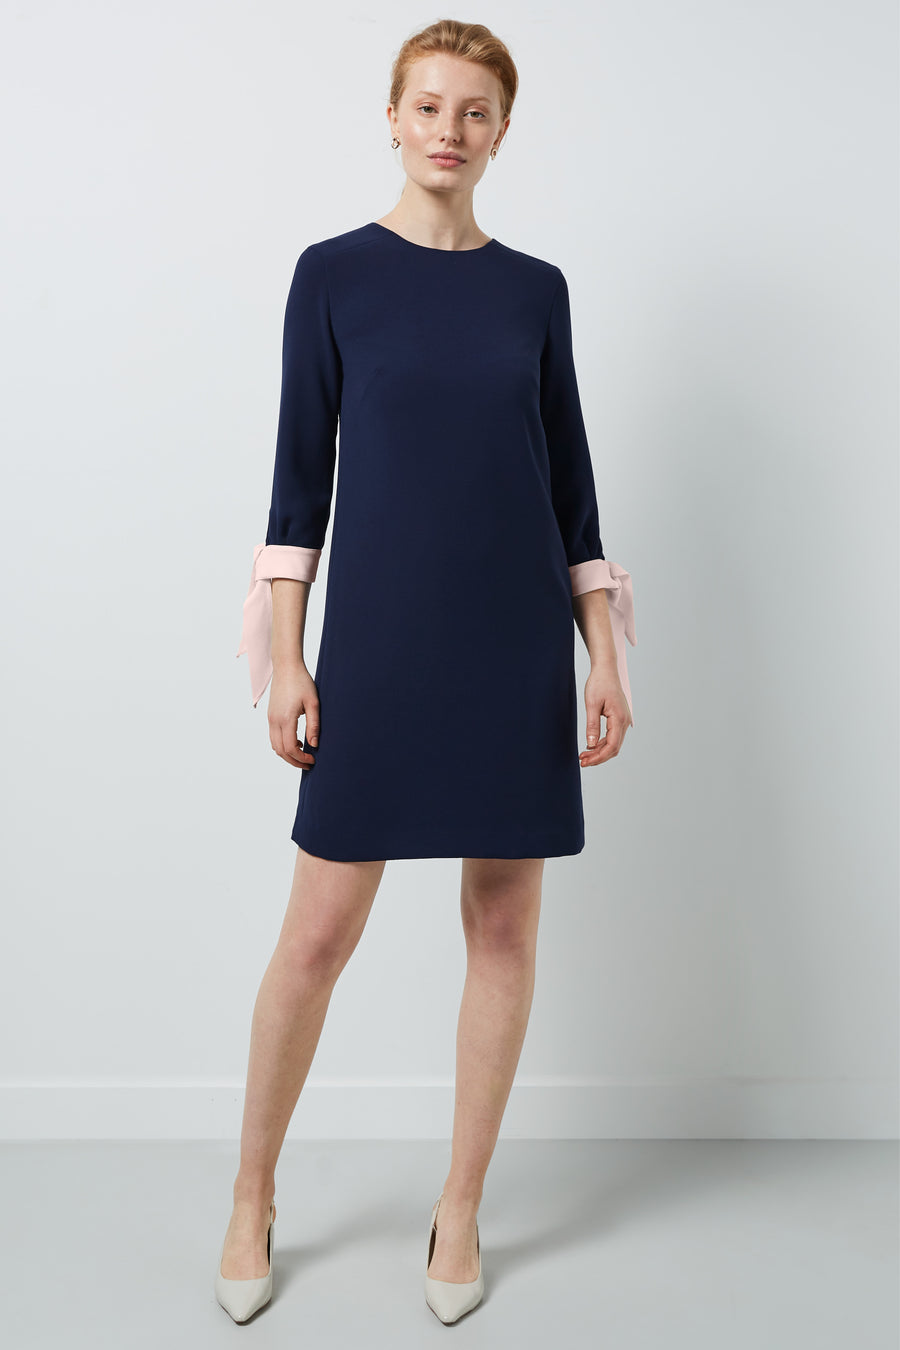 Padstow Navy and Pink Dress